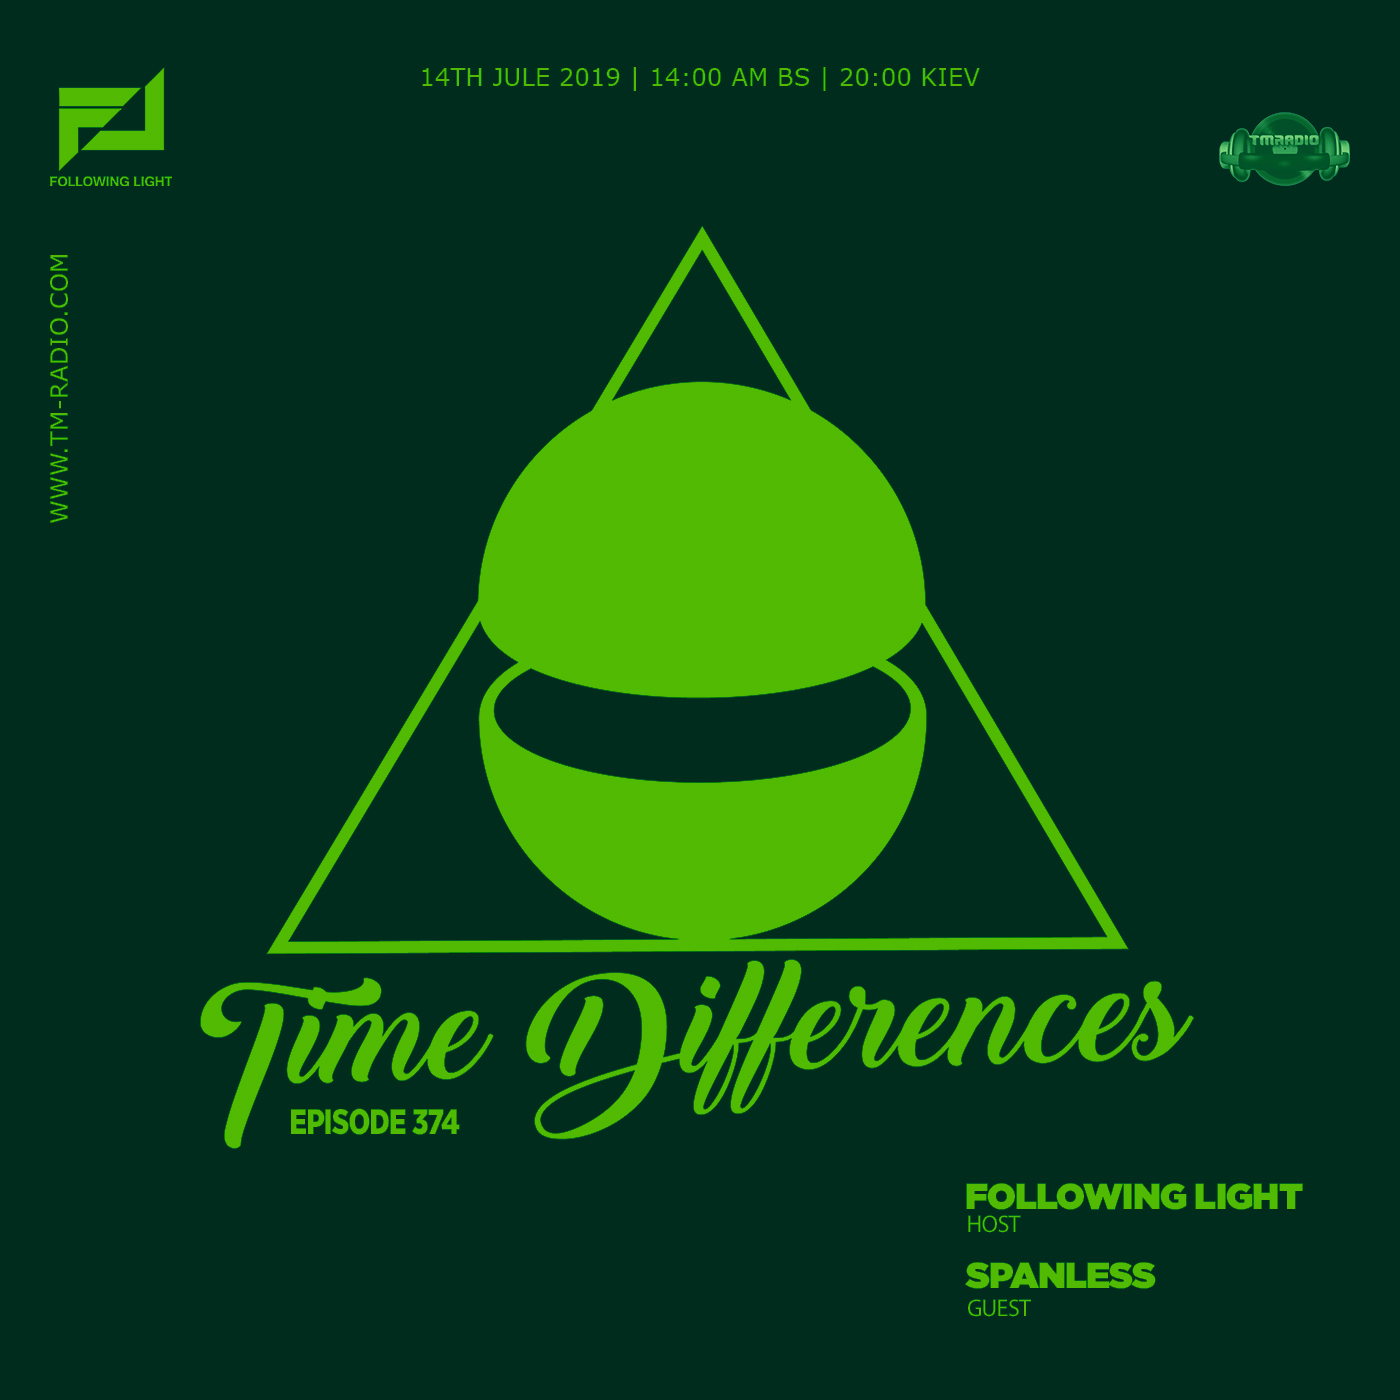 Time Differences :: Episode 374, with host Following Light and guest Spanless (aired on July 14th, 2019) banner logo